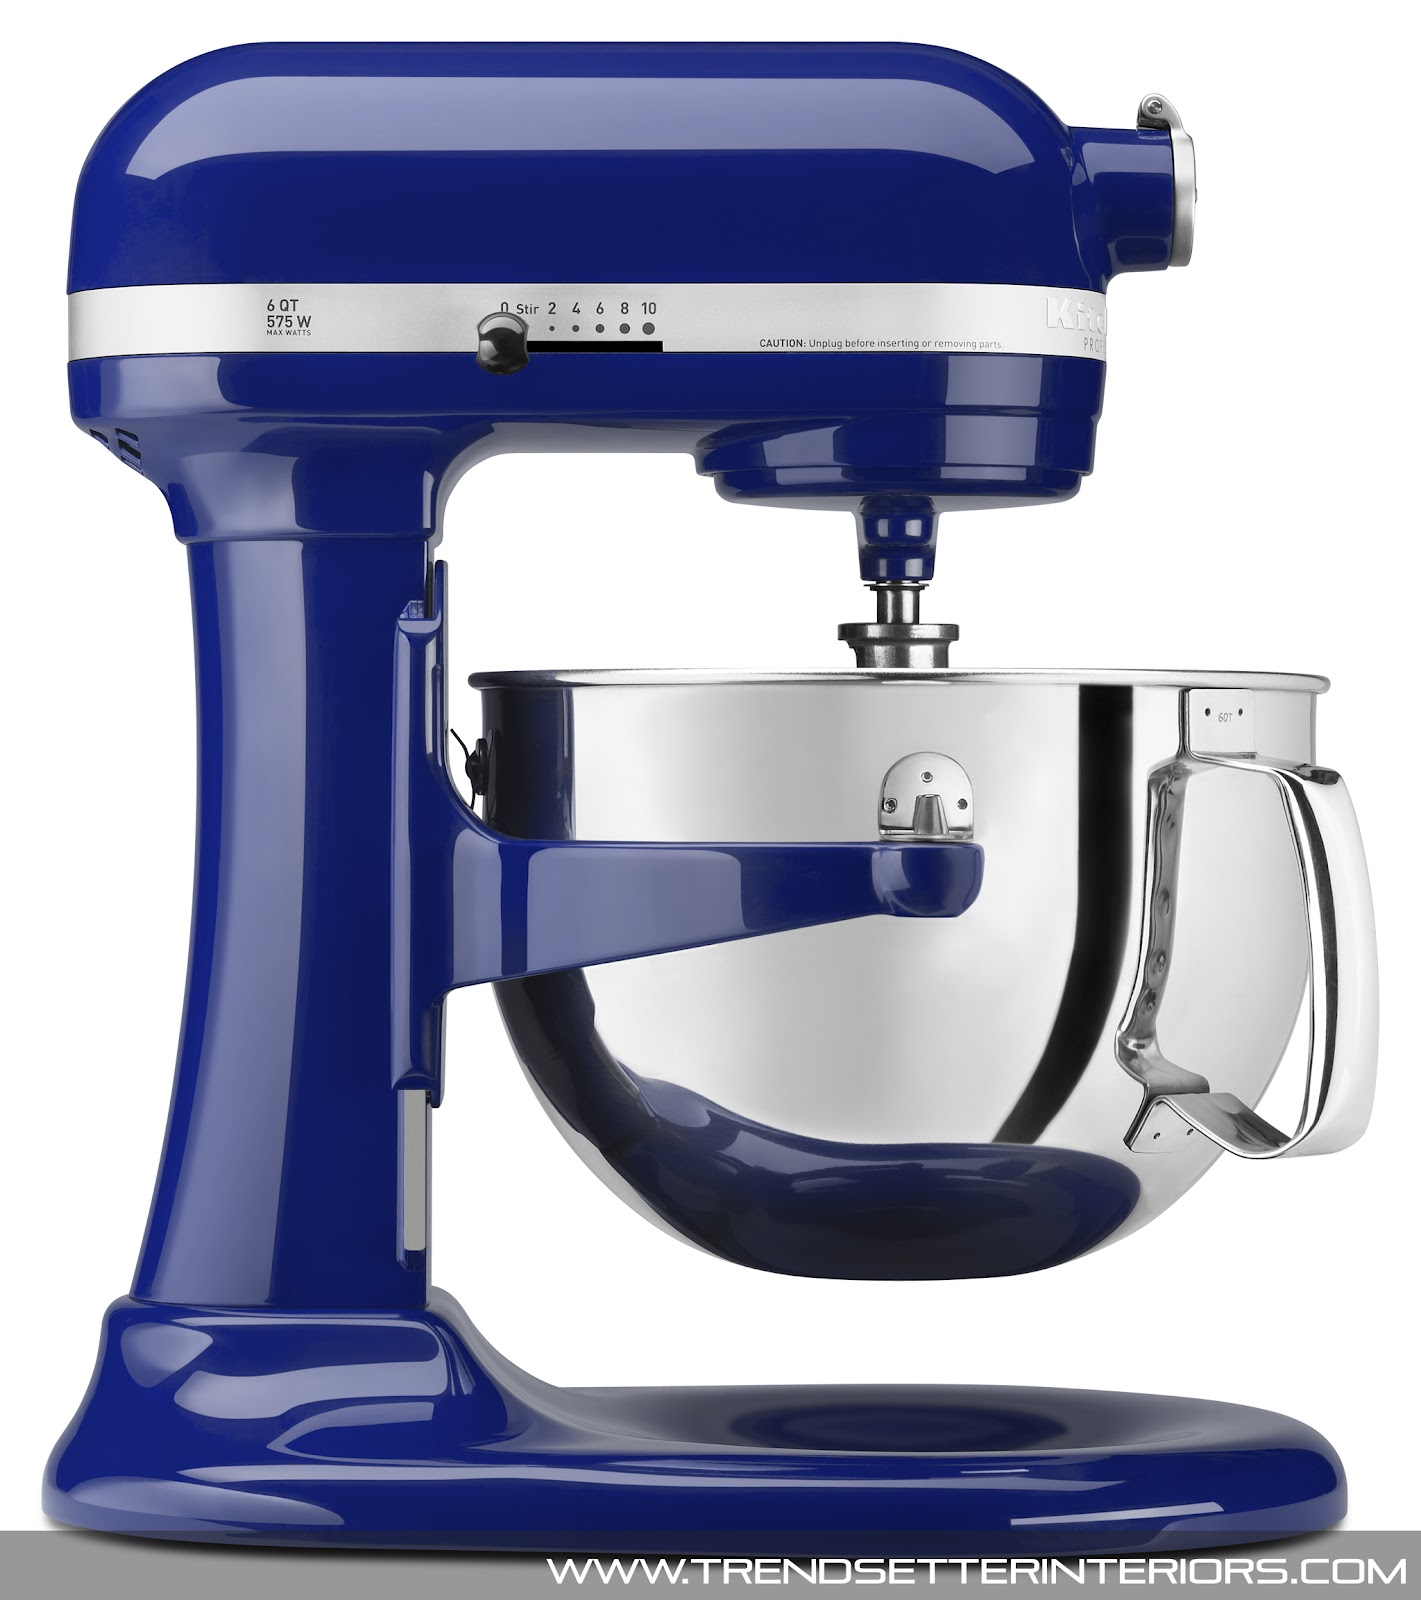 Trendsetter Interiors New Colors For Kitchenaid